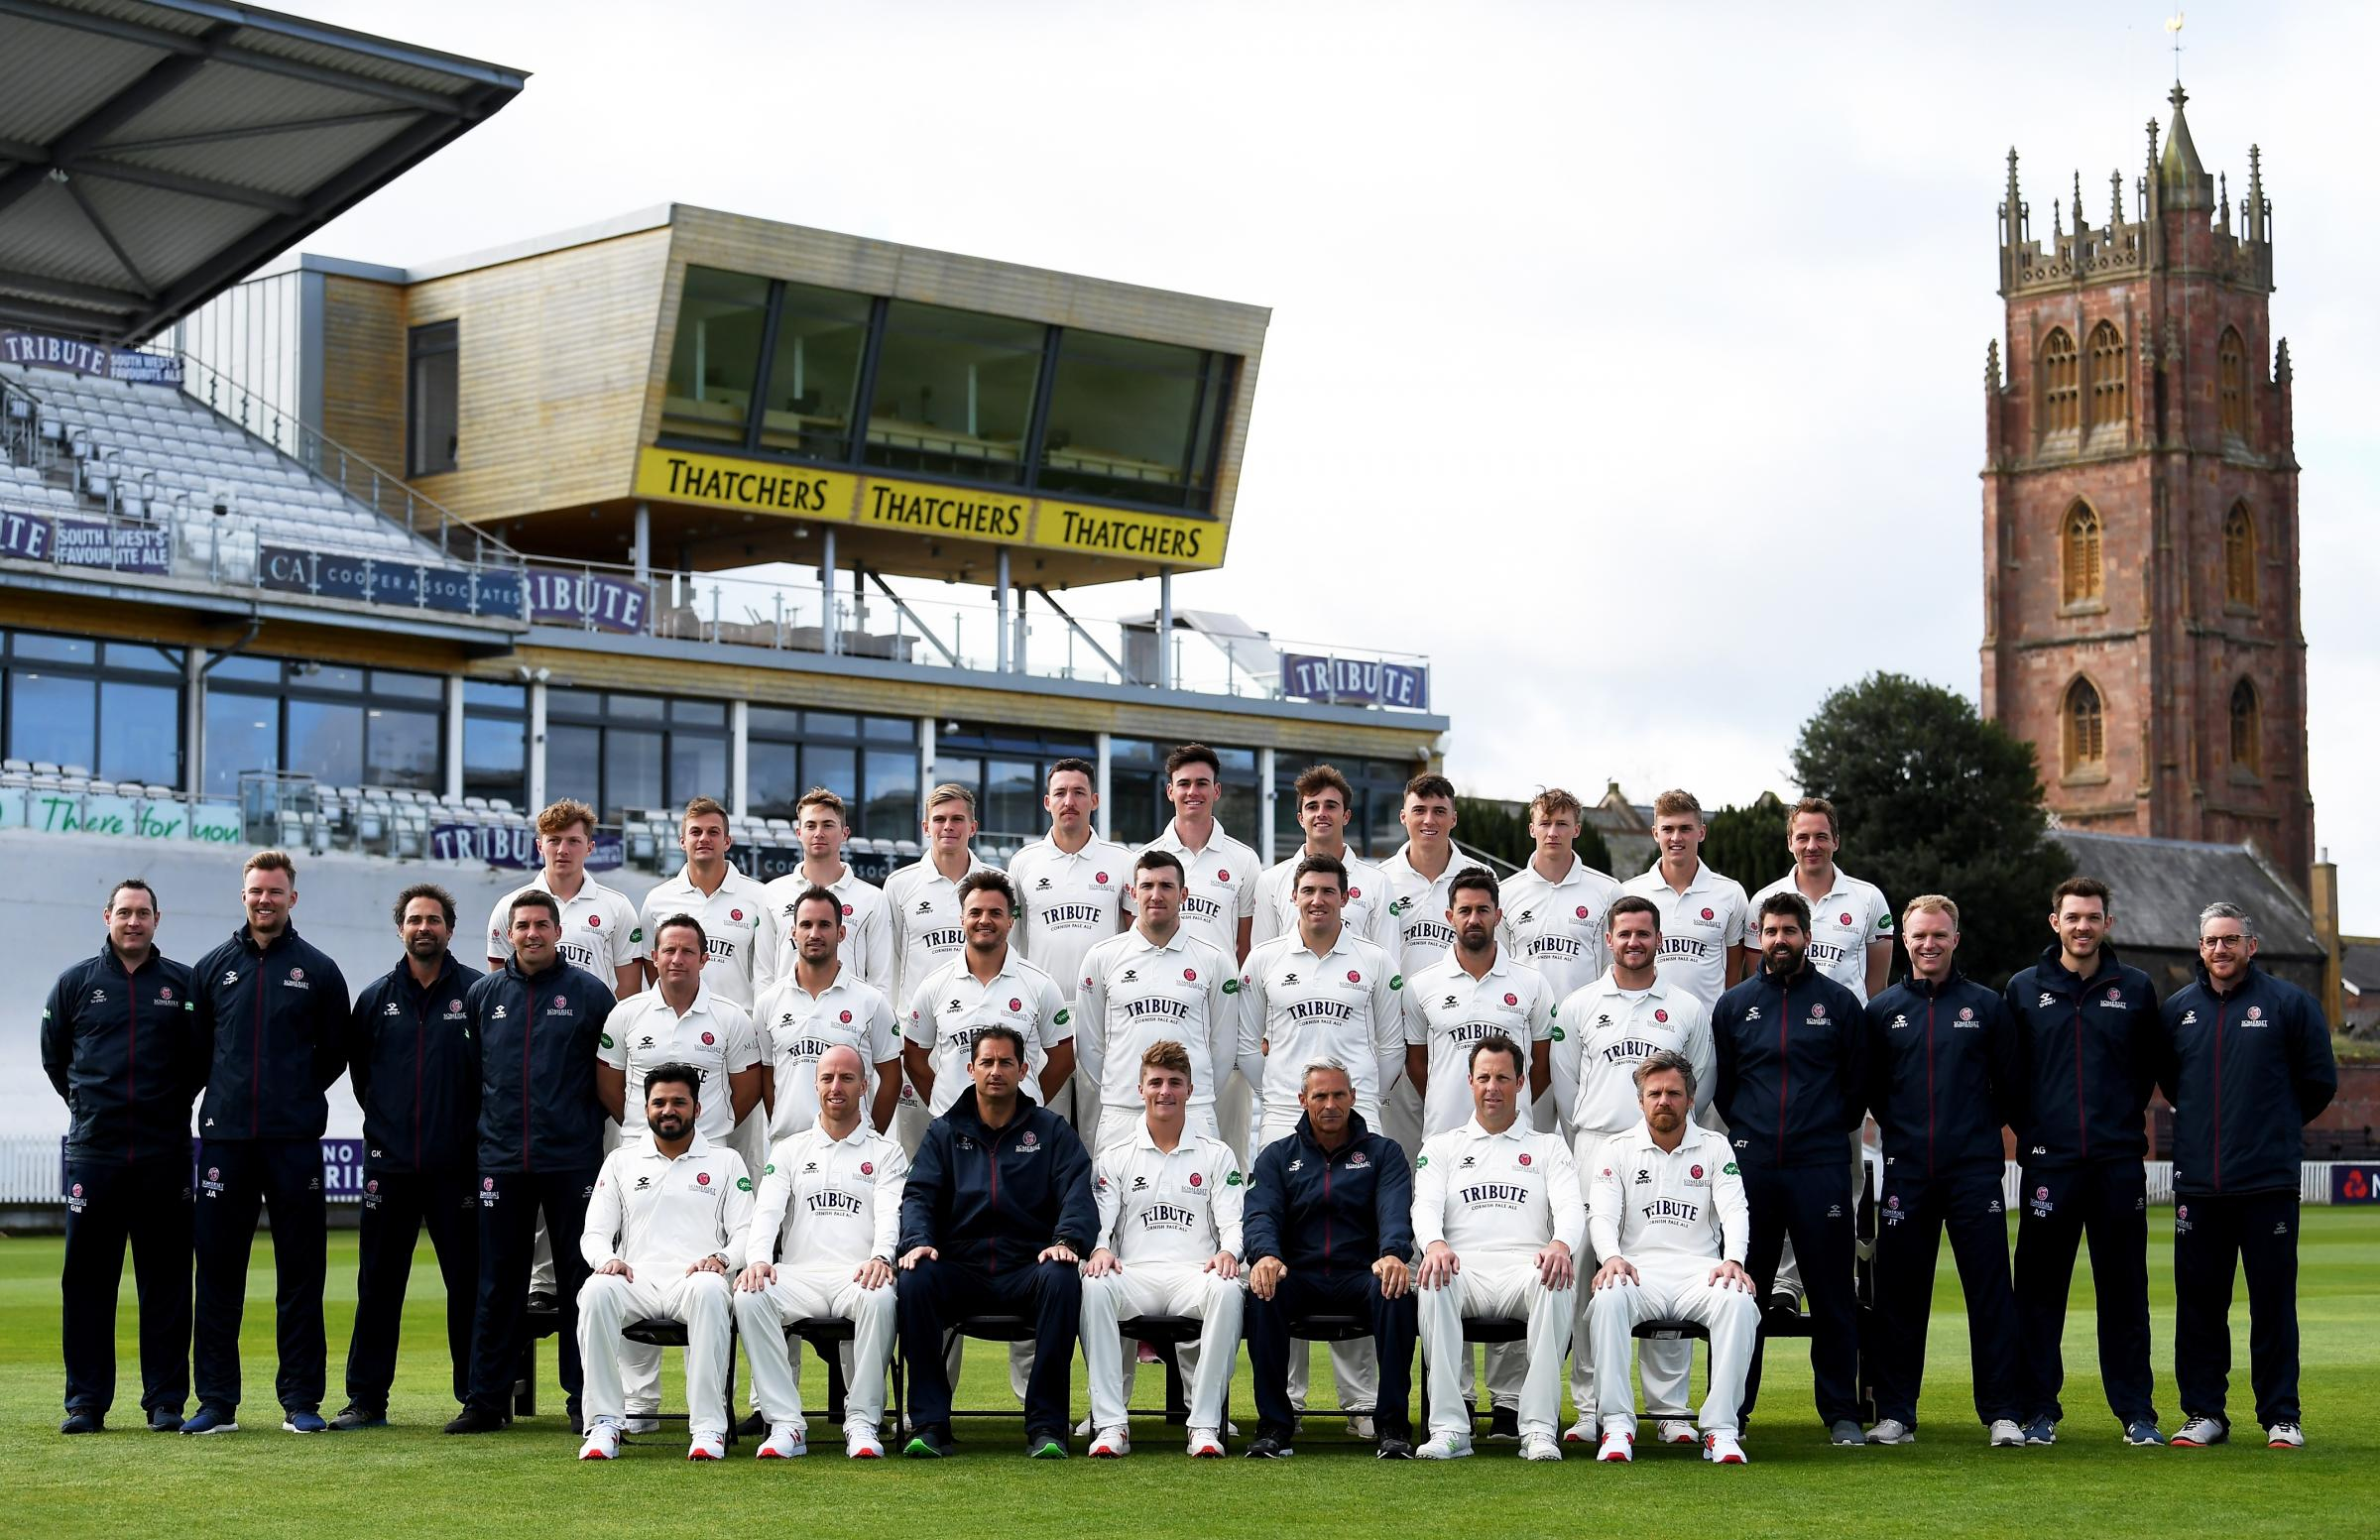 OPTIMISM: Somerset CCC's County Championship squad for 2019. Pic: SCCC